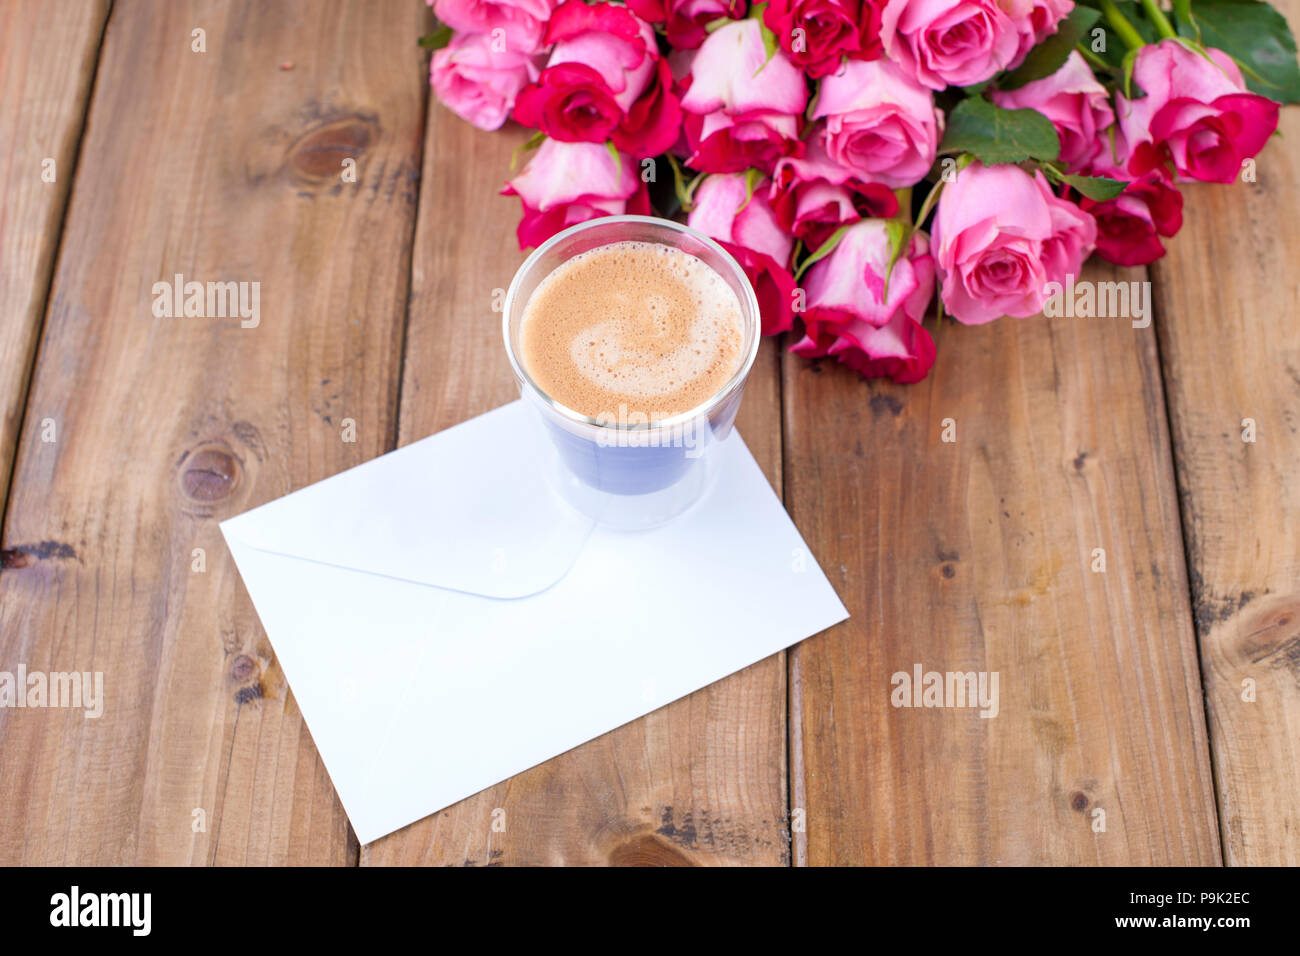 A bouquet of fresh pink roses and a glass of espresso. Wooden background. Free space for text or postcards. White envelope for writing. - Stock Image